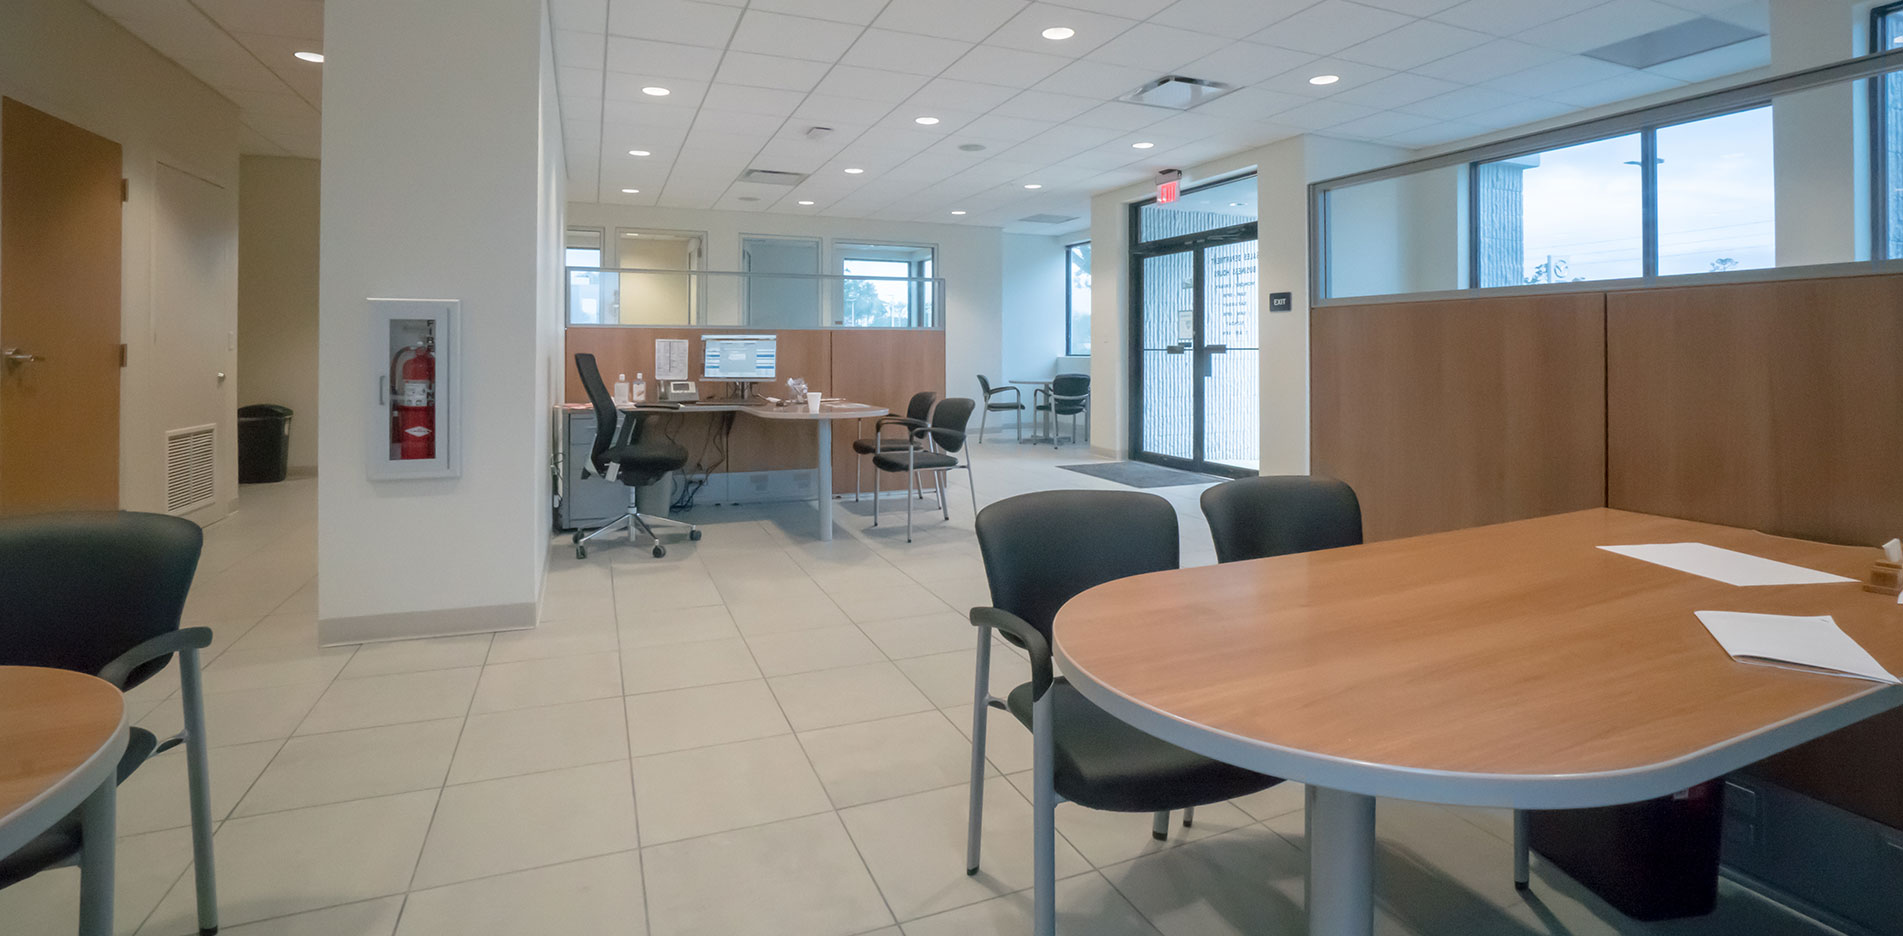 Sales center furnished with tables and chairs /></li> <li class=